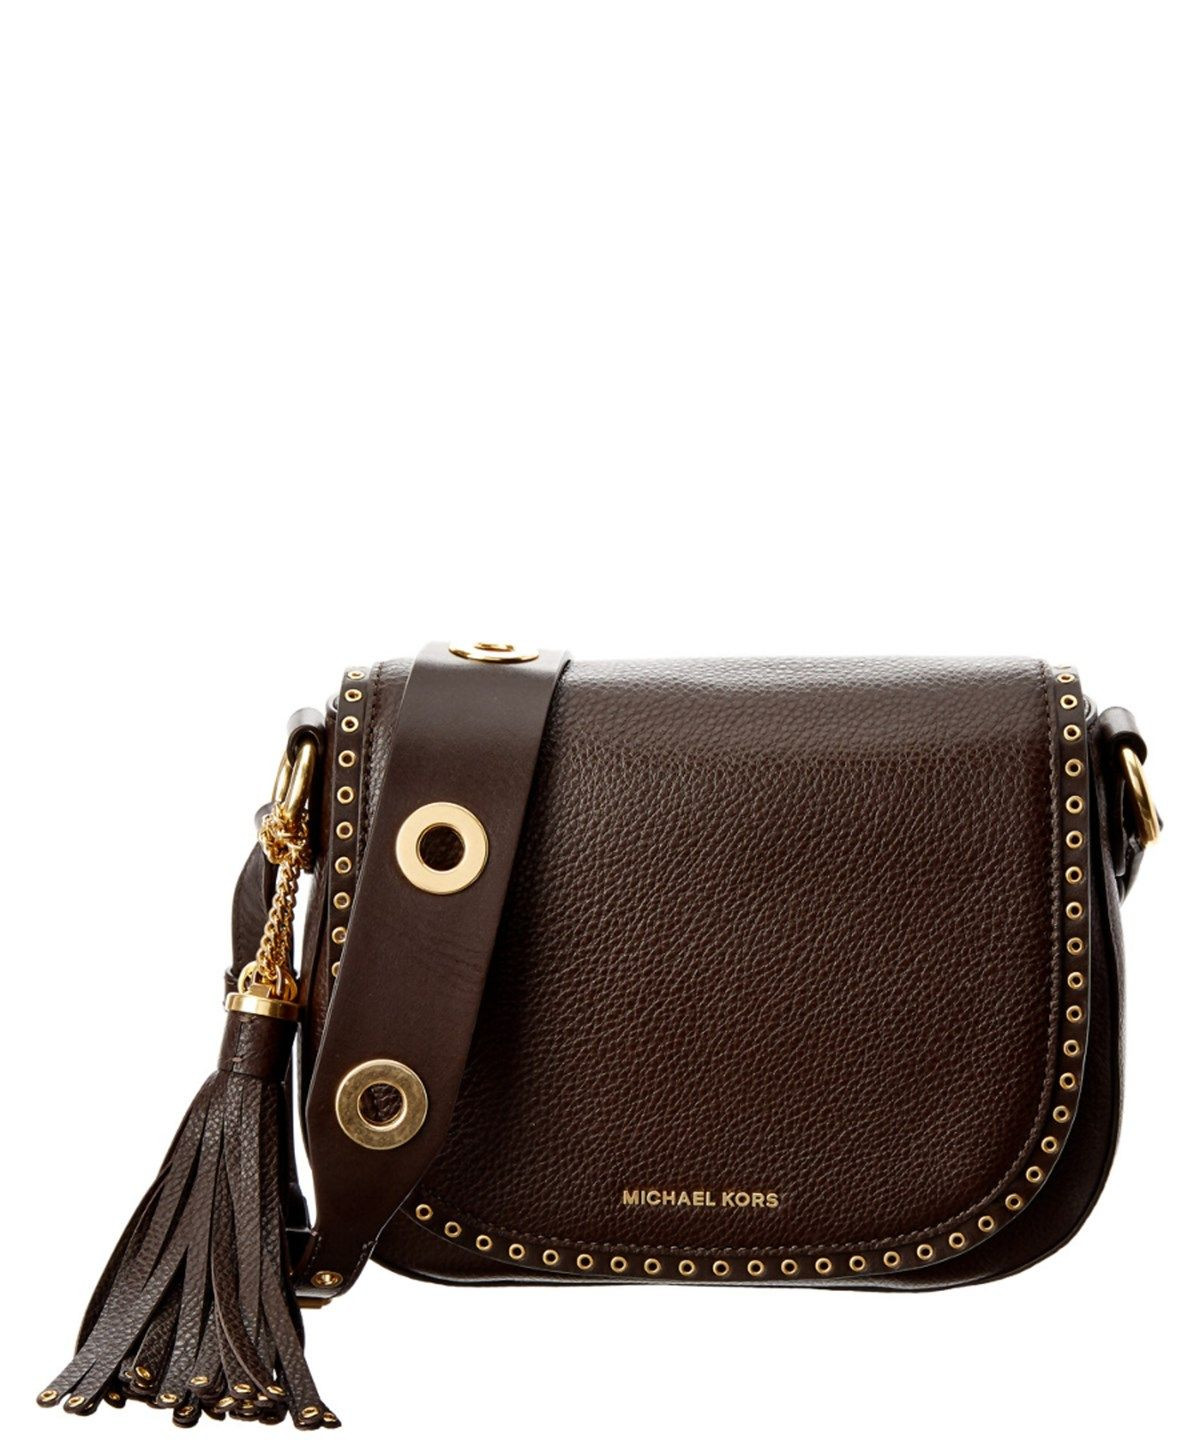 f498e74e5824e5 MICHAEL MICHAEL KORS MICHAEL MICHAEL KORS BROOKLYN MEDIUM LEATHER SADDLE  BAG'. #michaelmichaelkors #bags #shoulder bags #leather #lining #